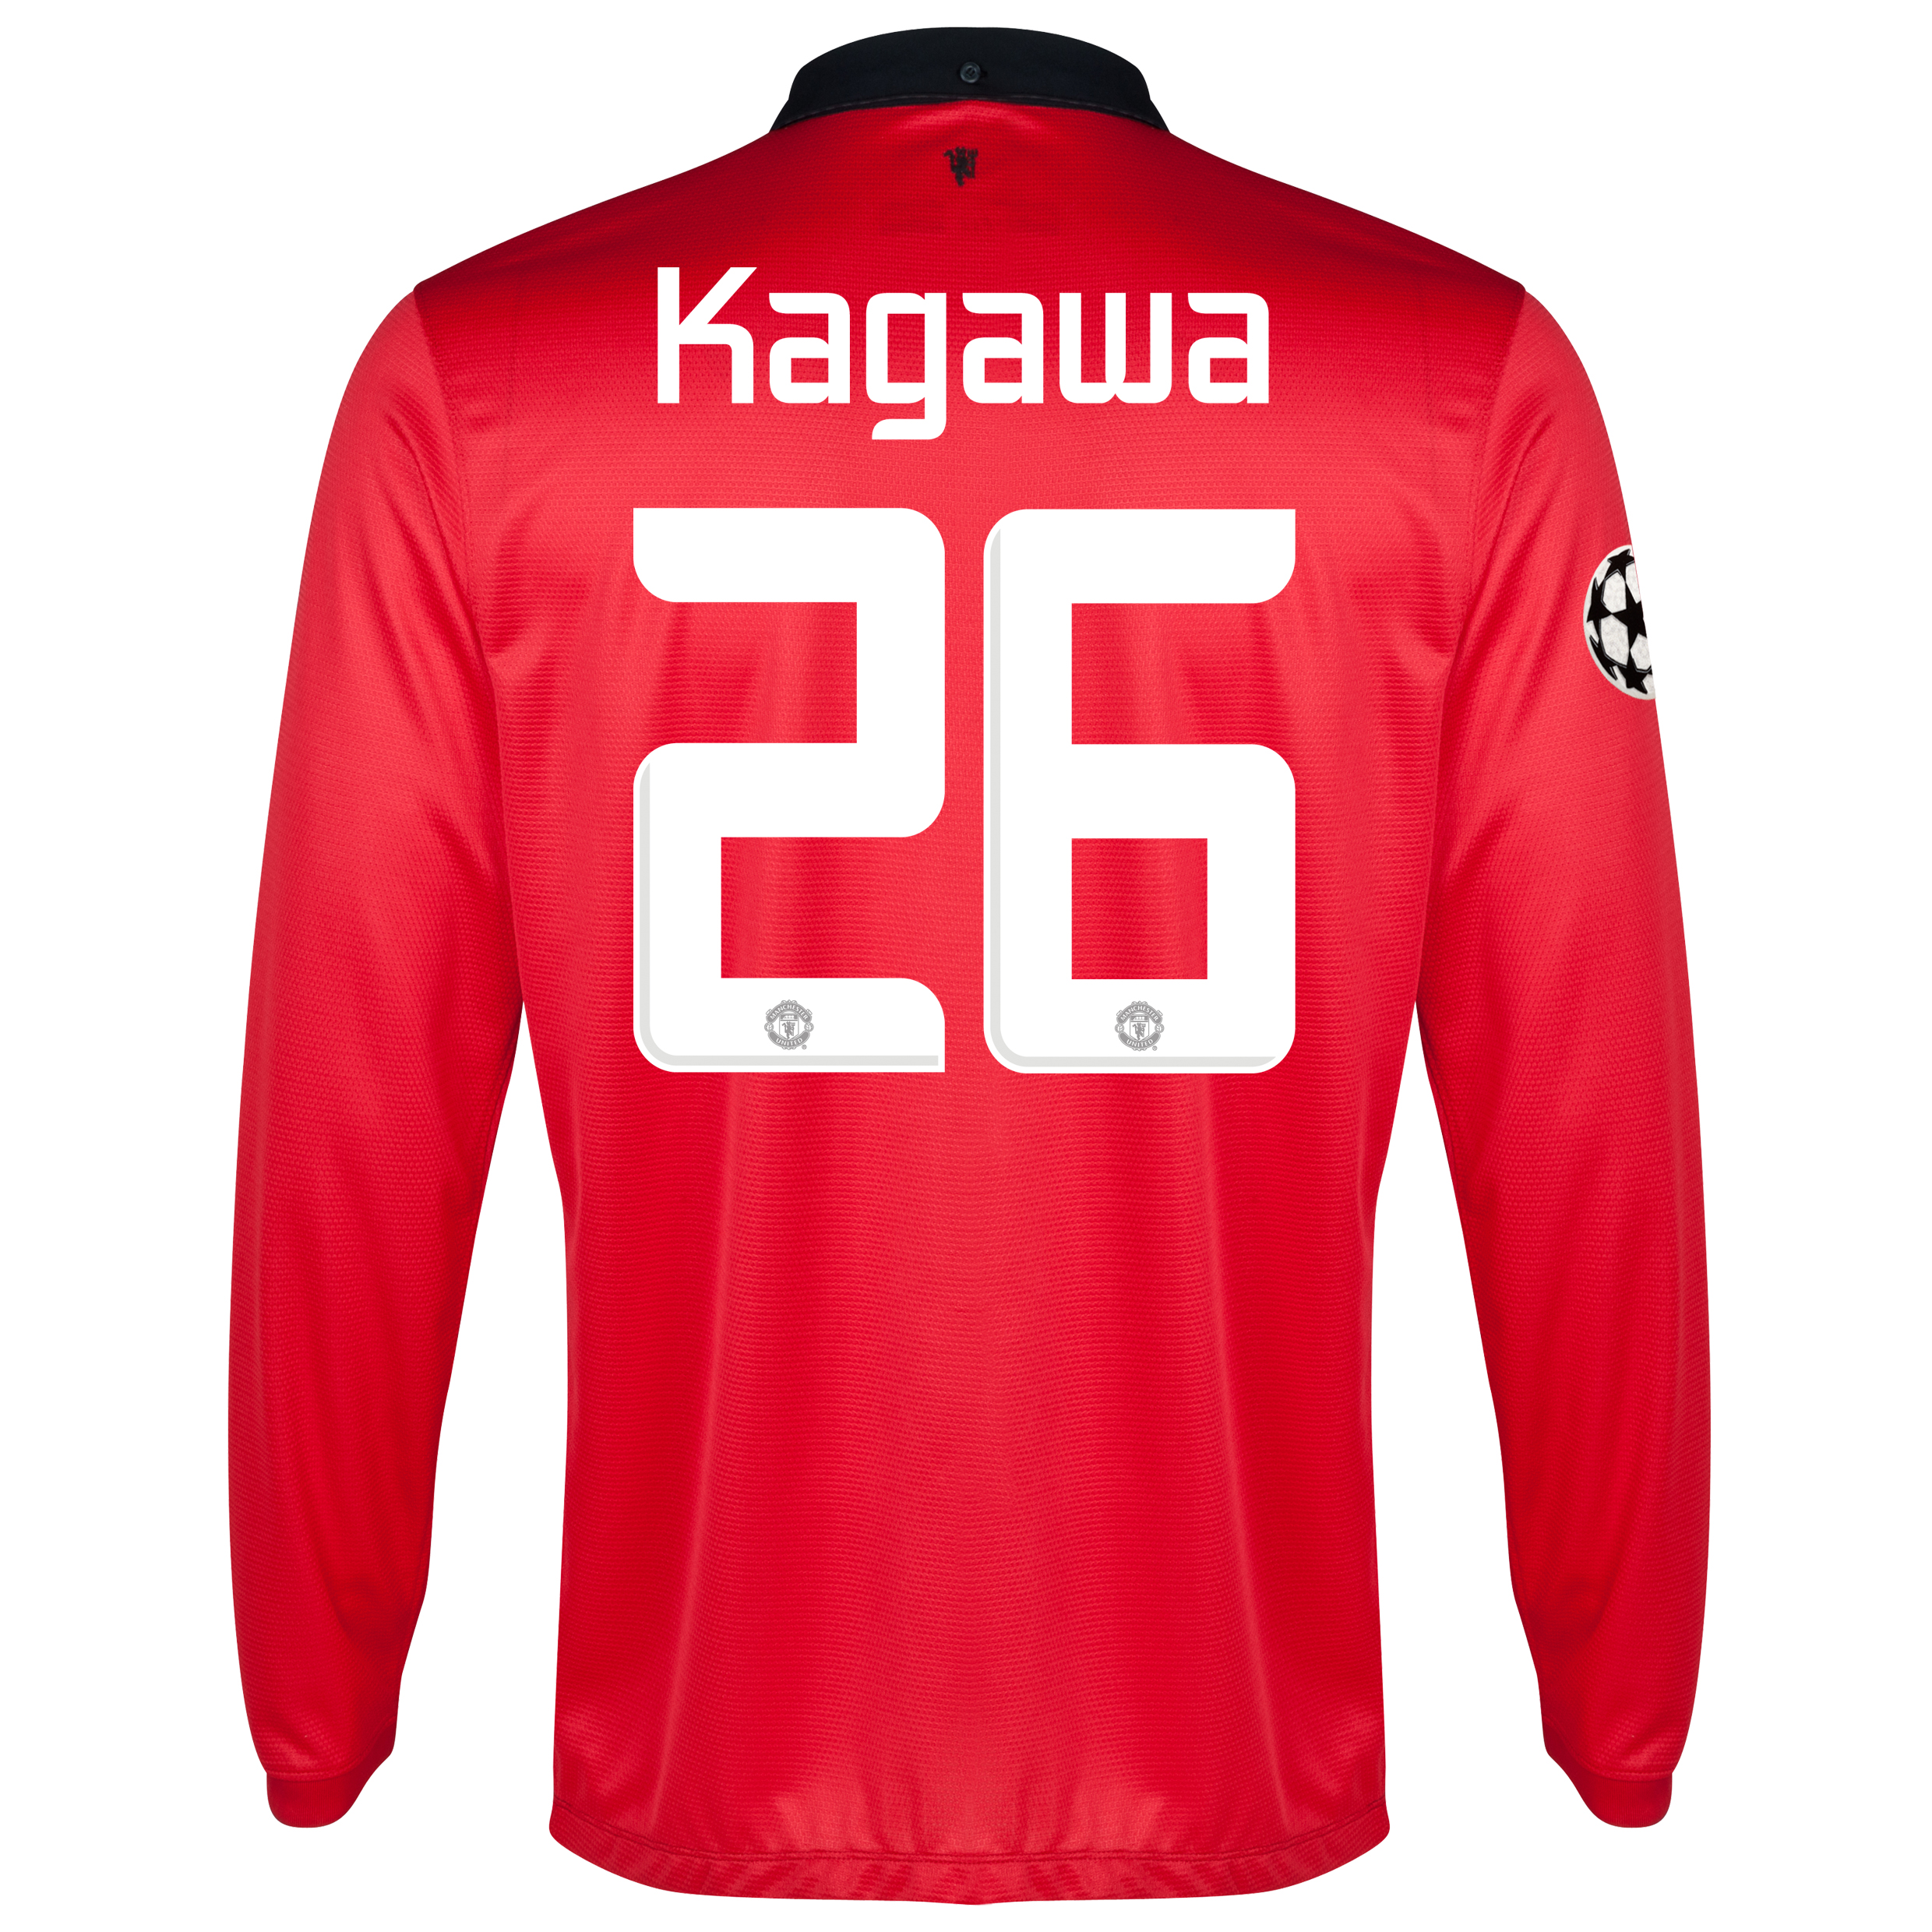 Manchester United UEFA Champions League Home Shirt 2013/14 - Long Sleeved with Kagawa 26 printing